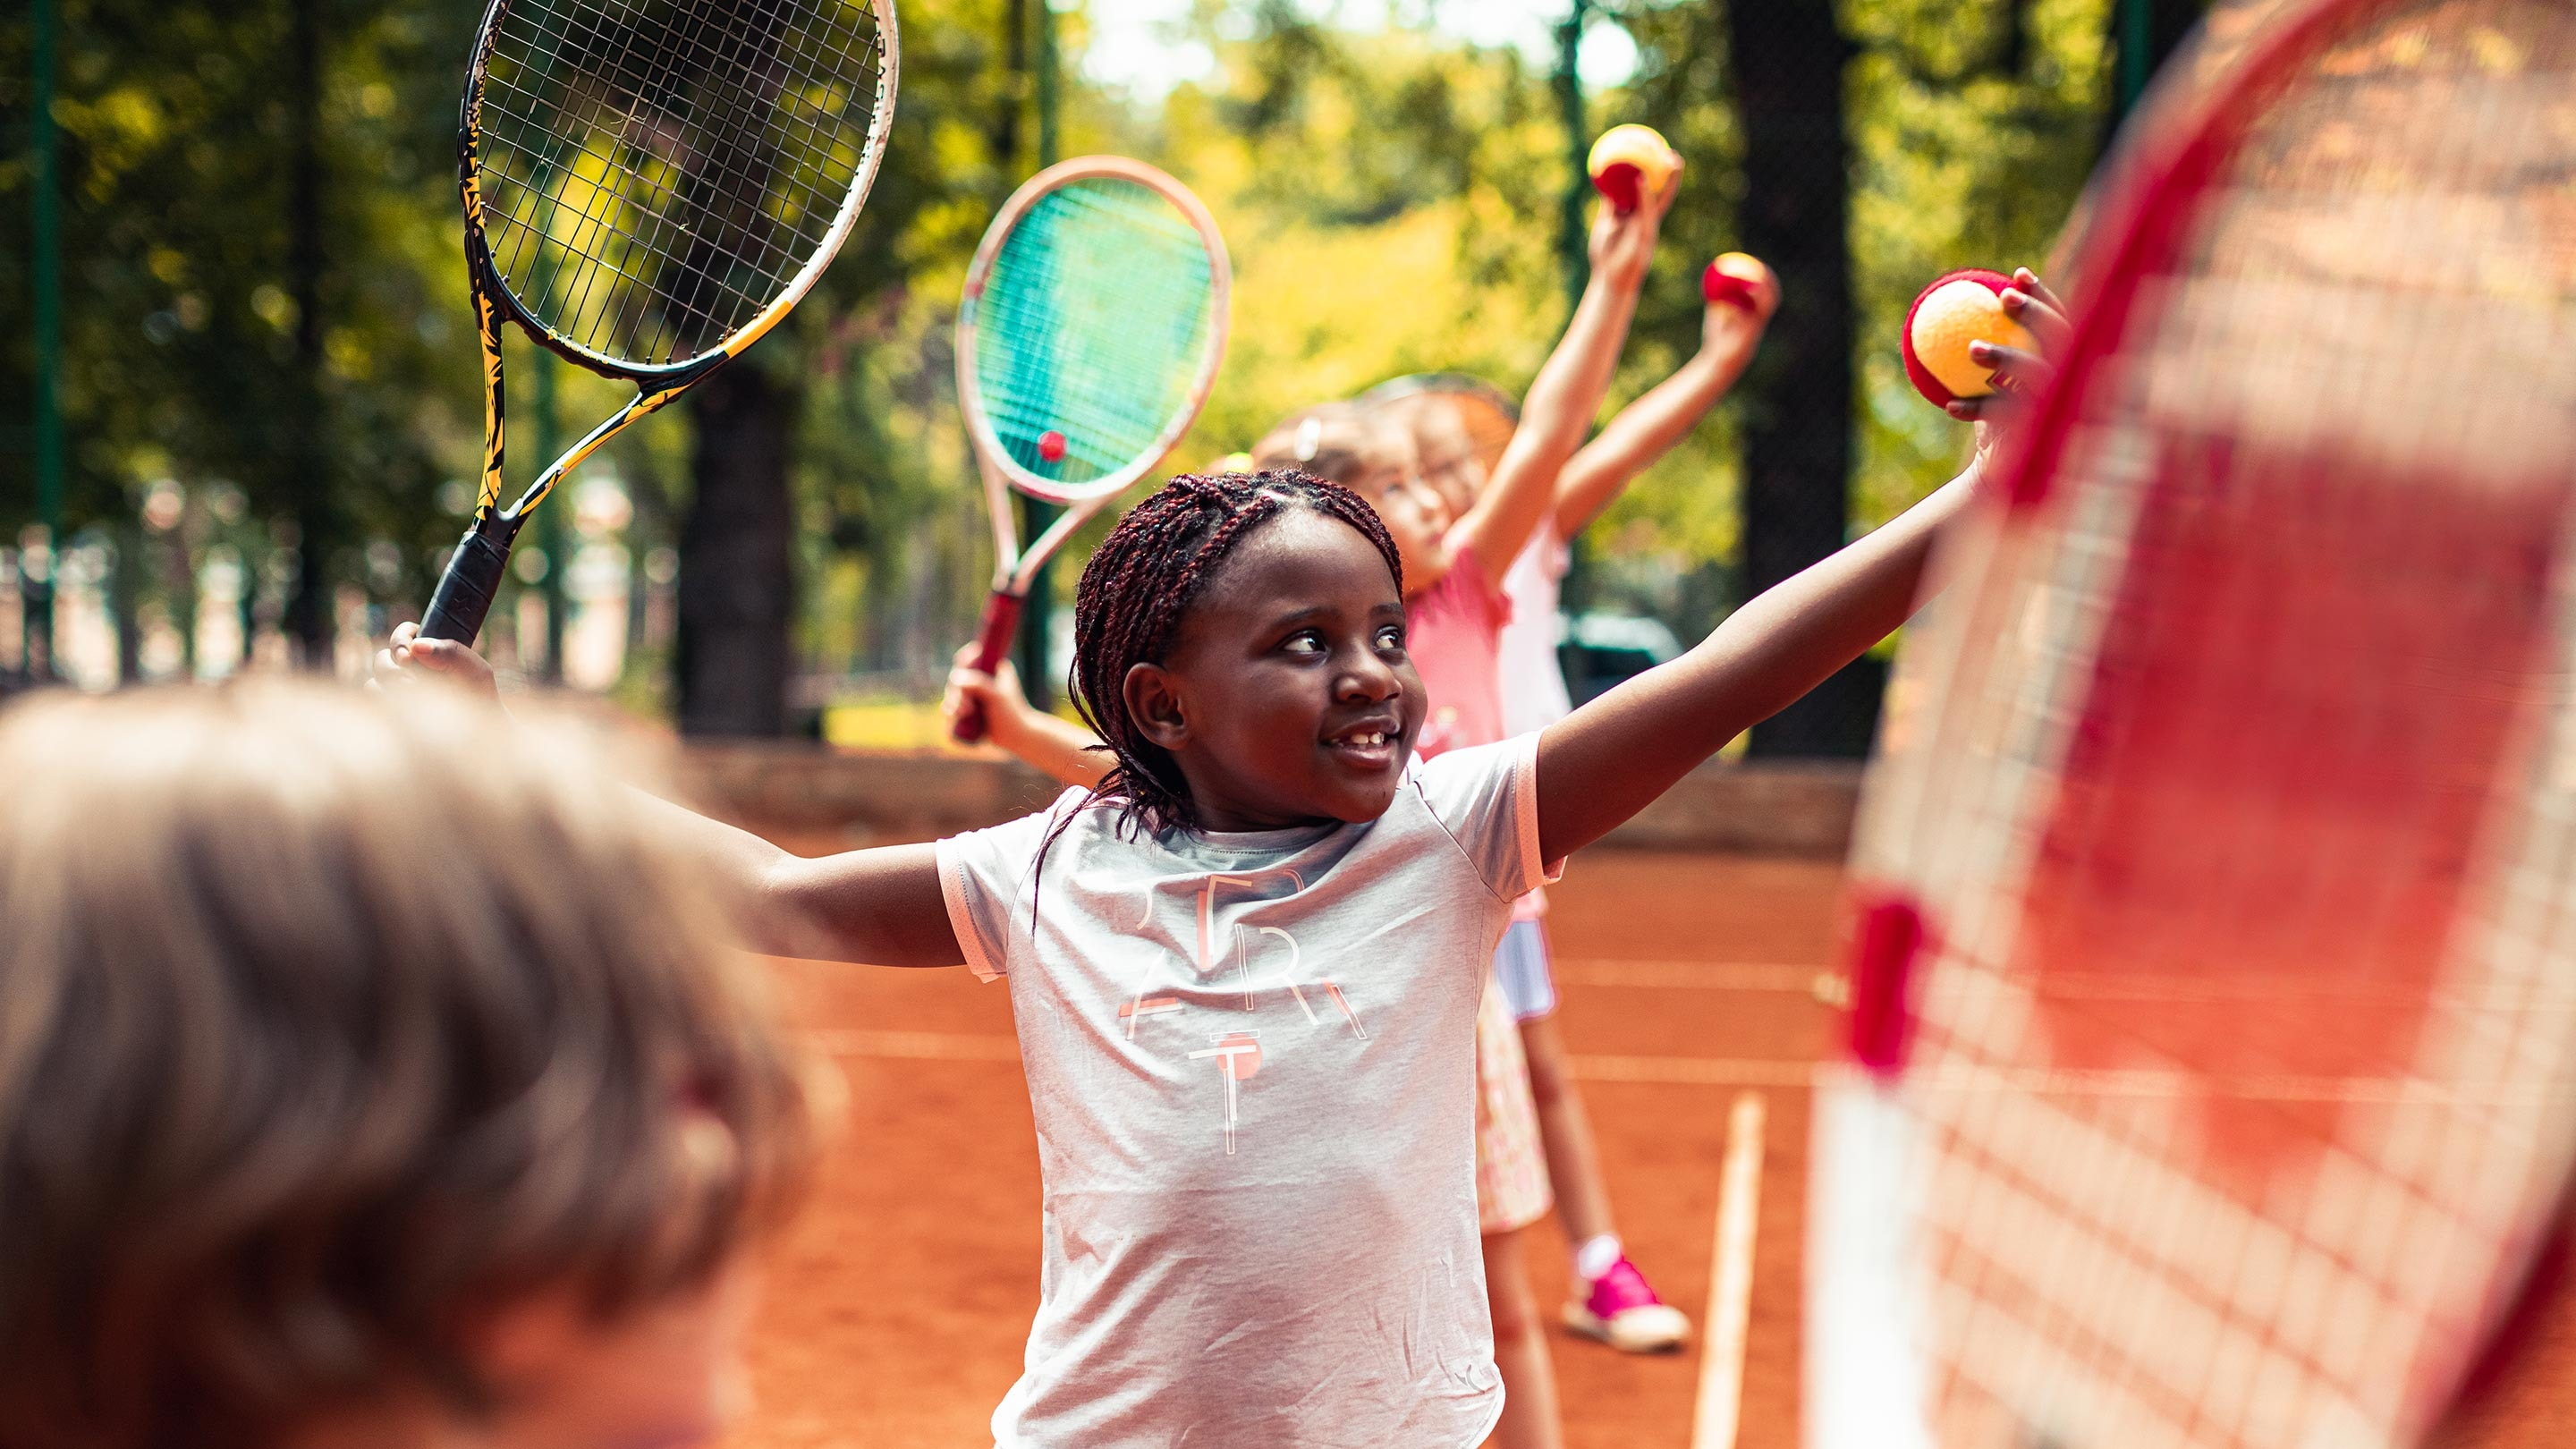 Close up of a group of kids on a tennis court learning how to serve